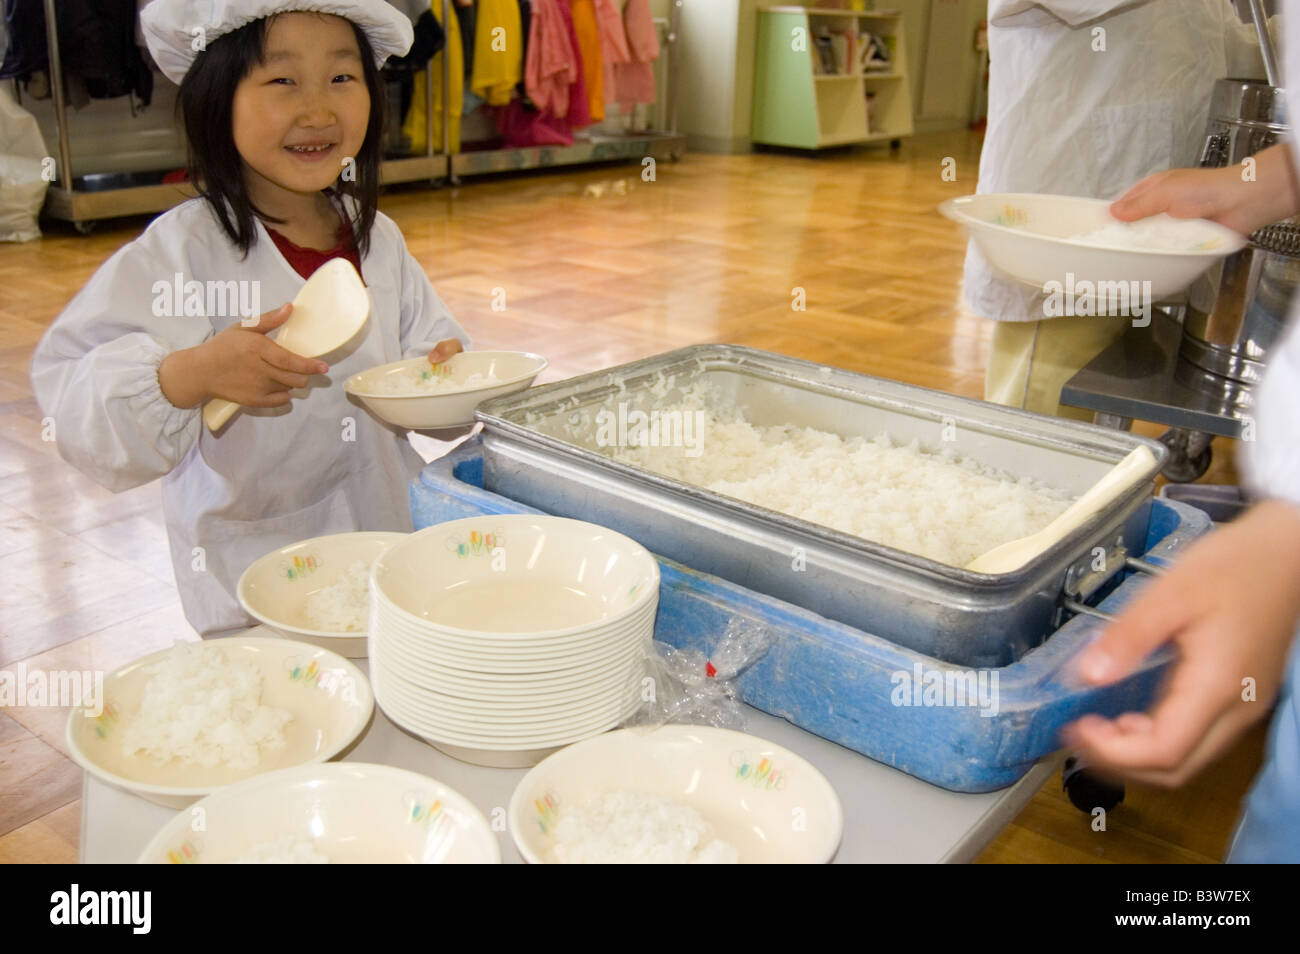 Japanese elementary school student serves lunch to her classmates - Stock Image